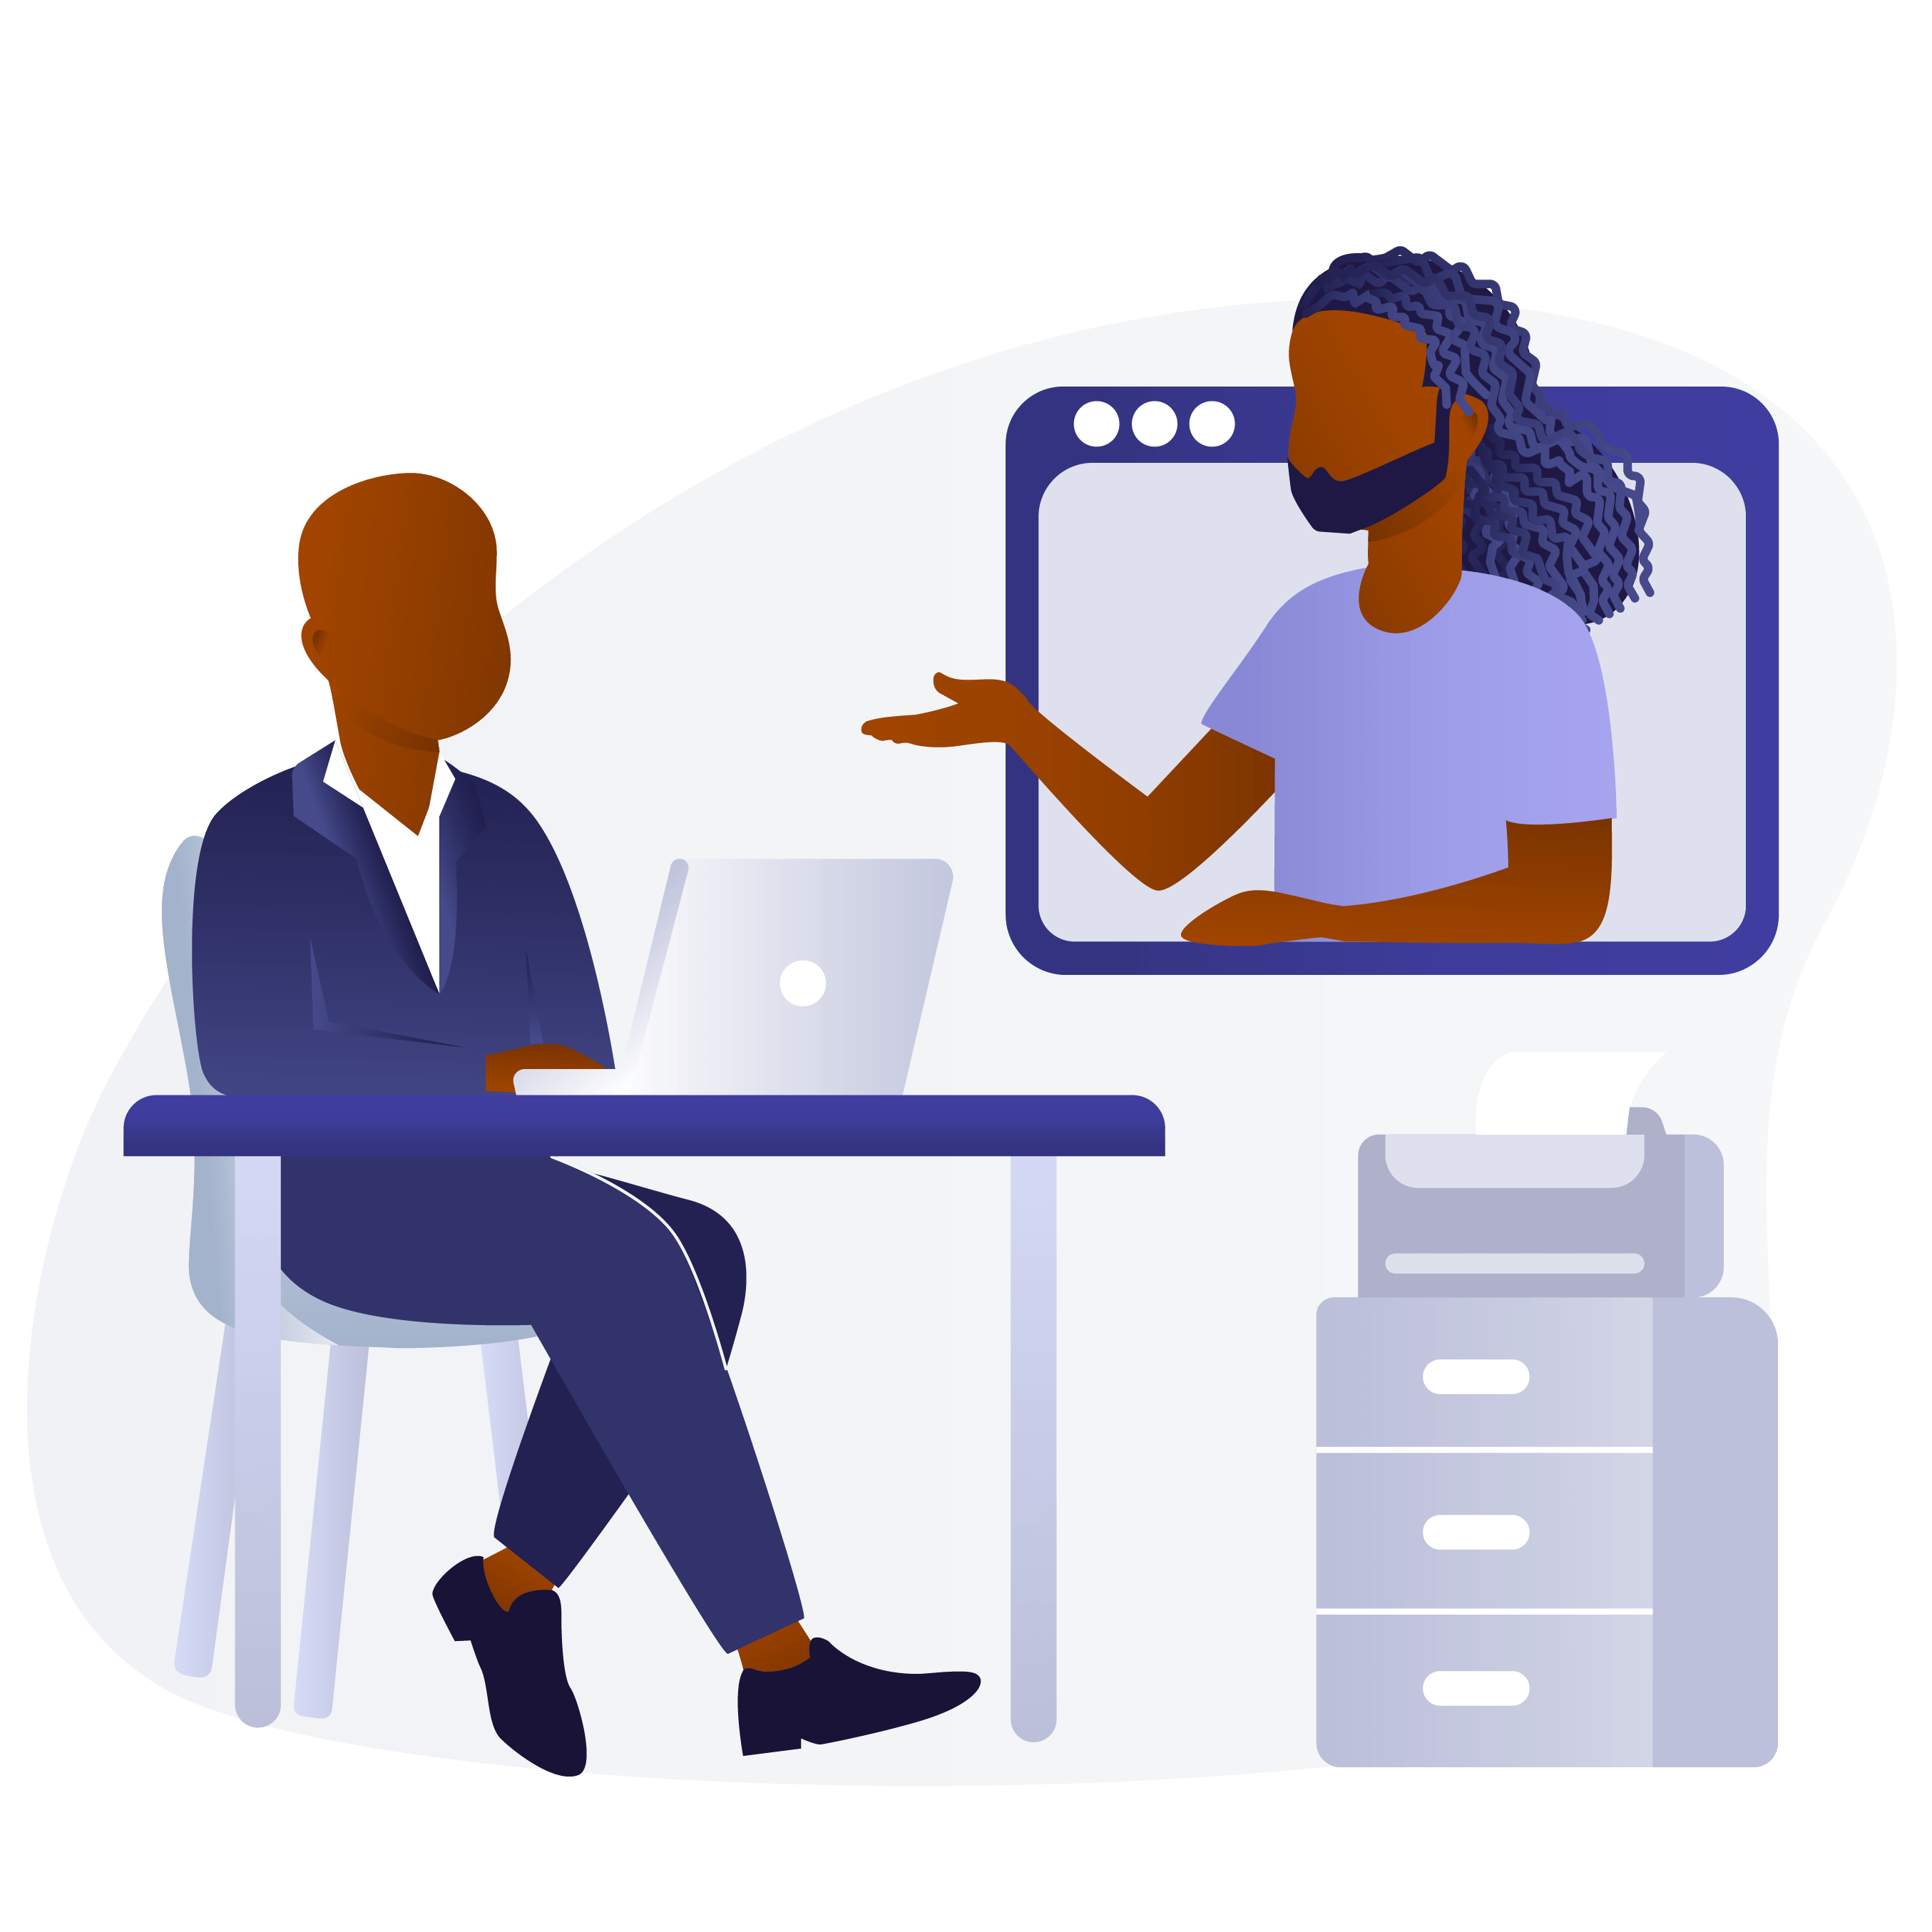 An illustrated image of two Black men video chatting in an office environment